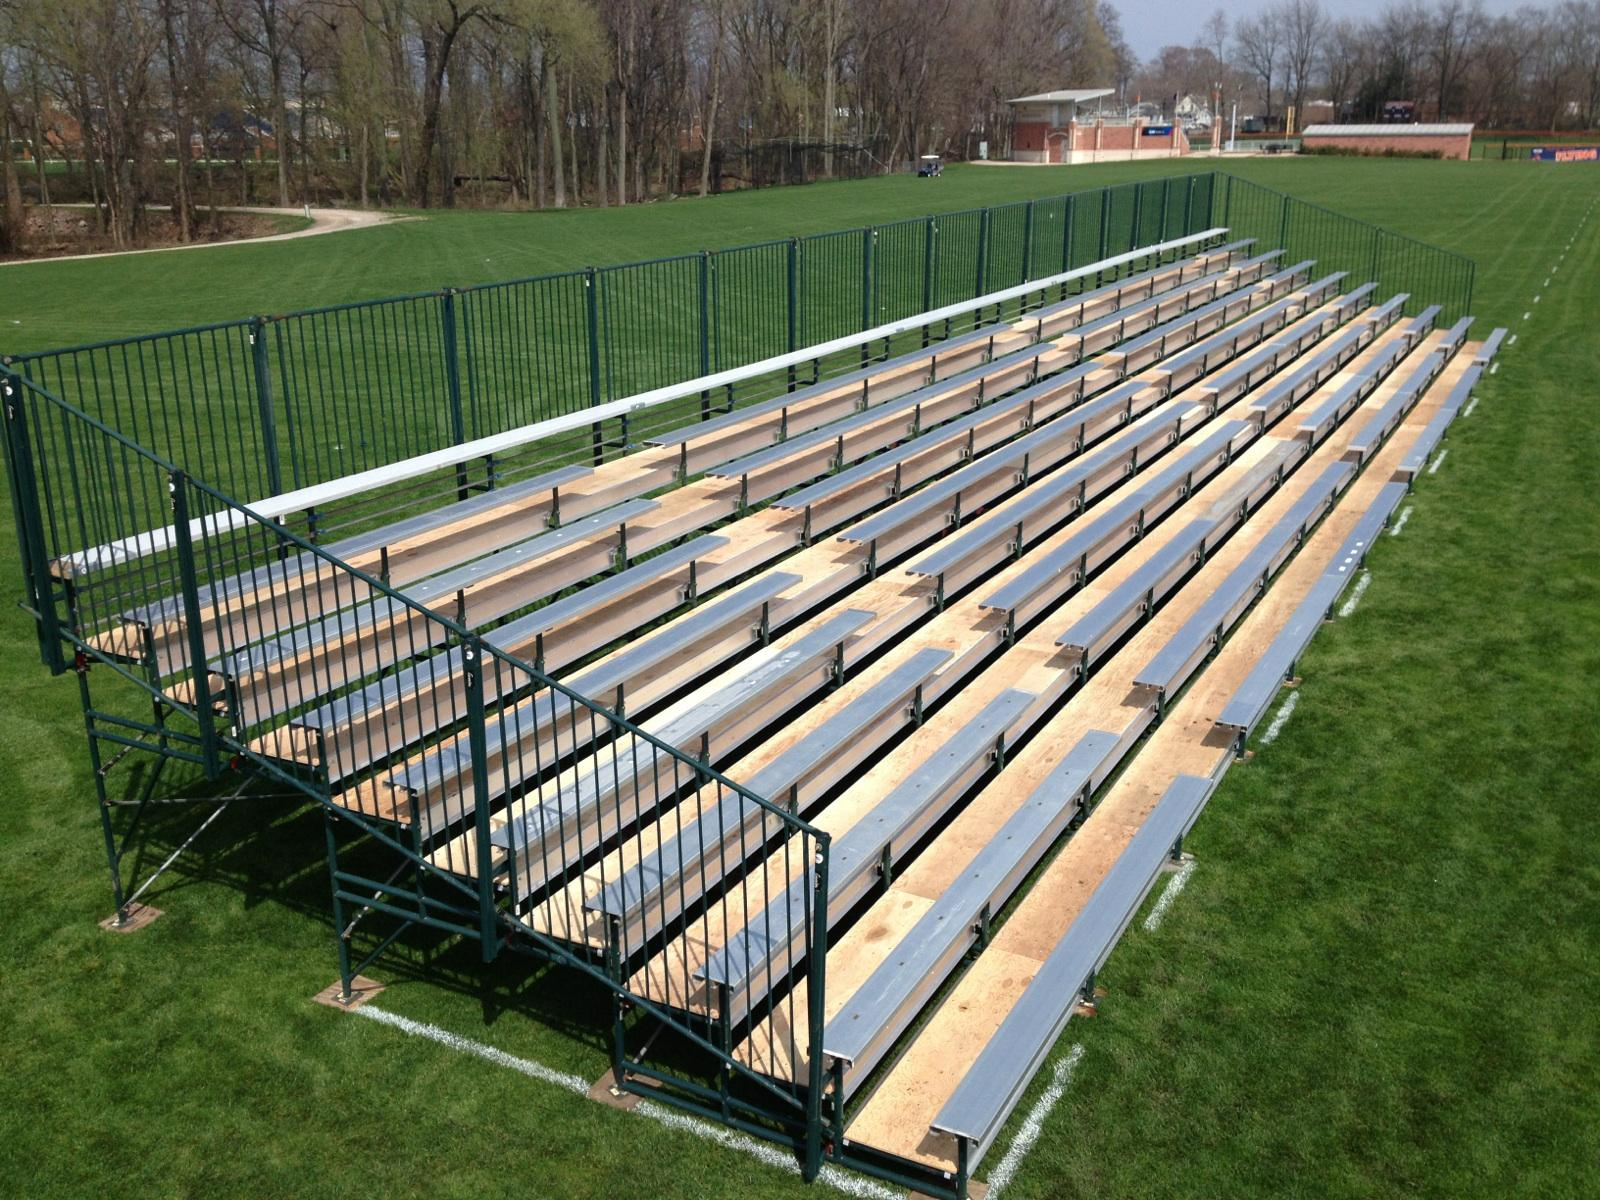 grandstands-new-deck-with-alum-seats